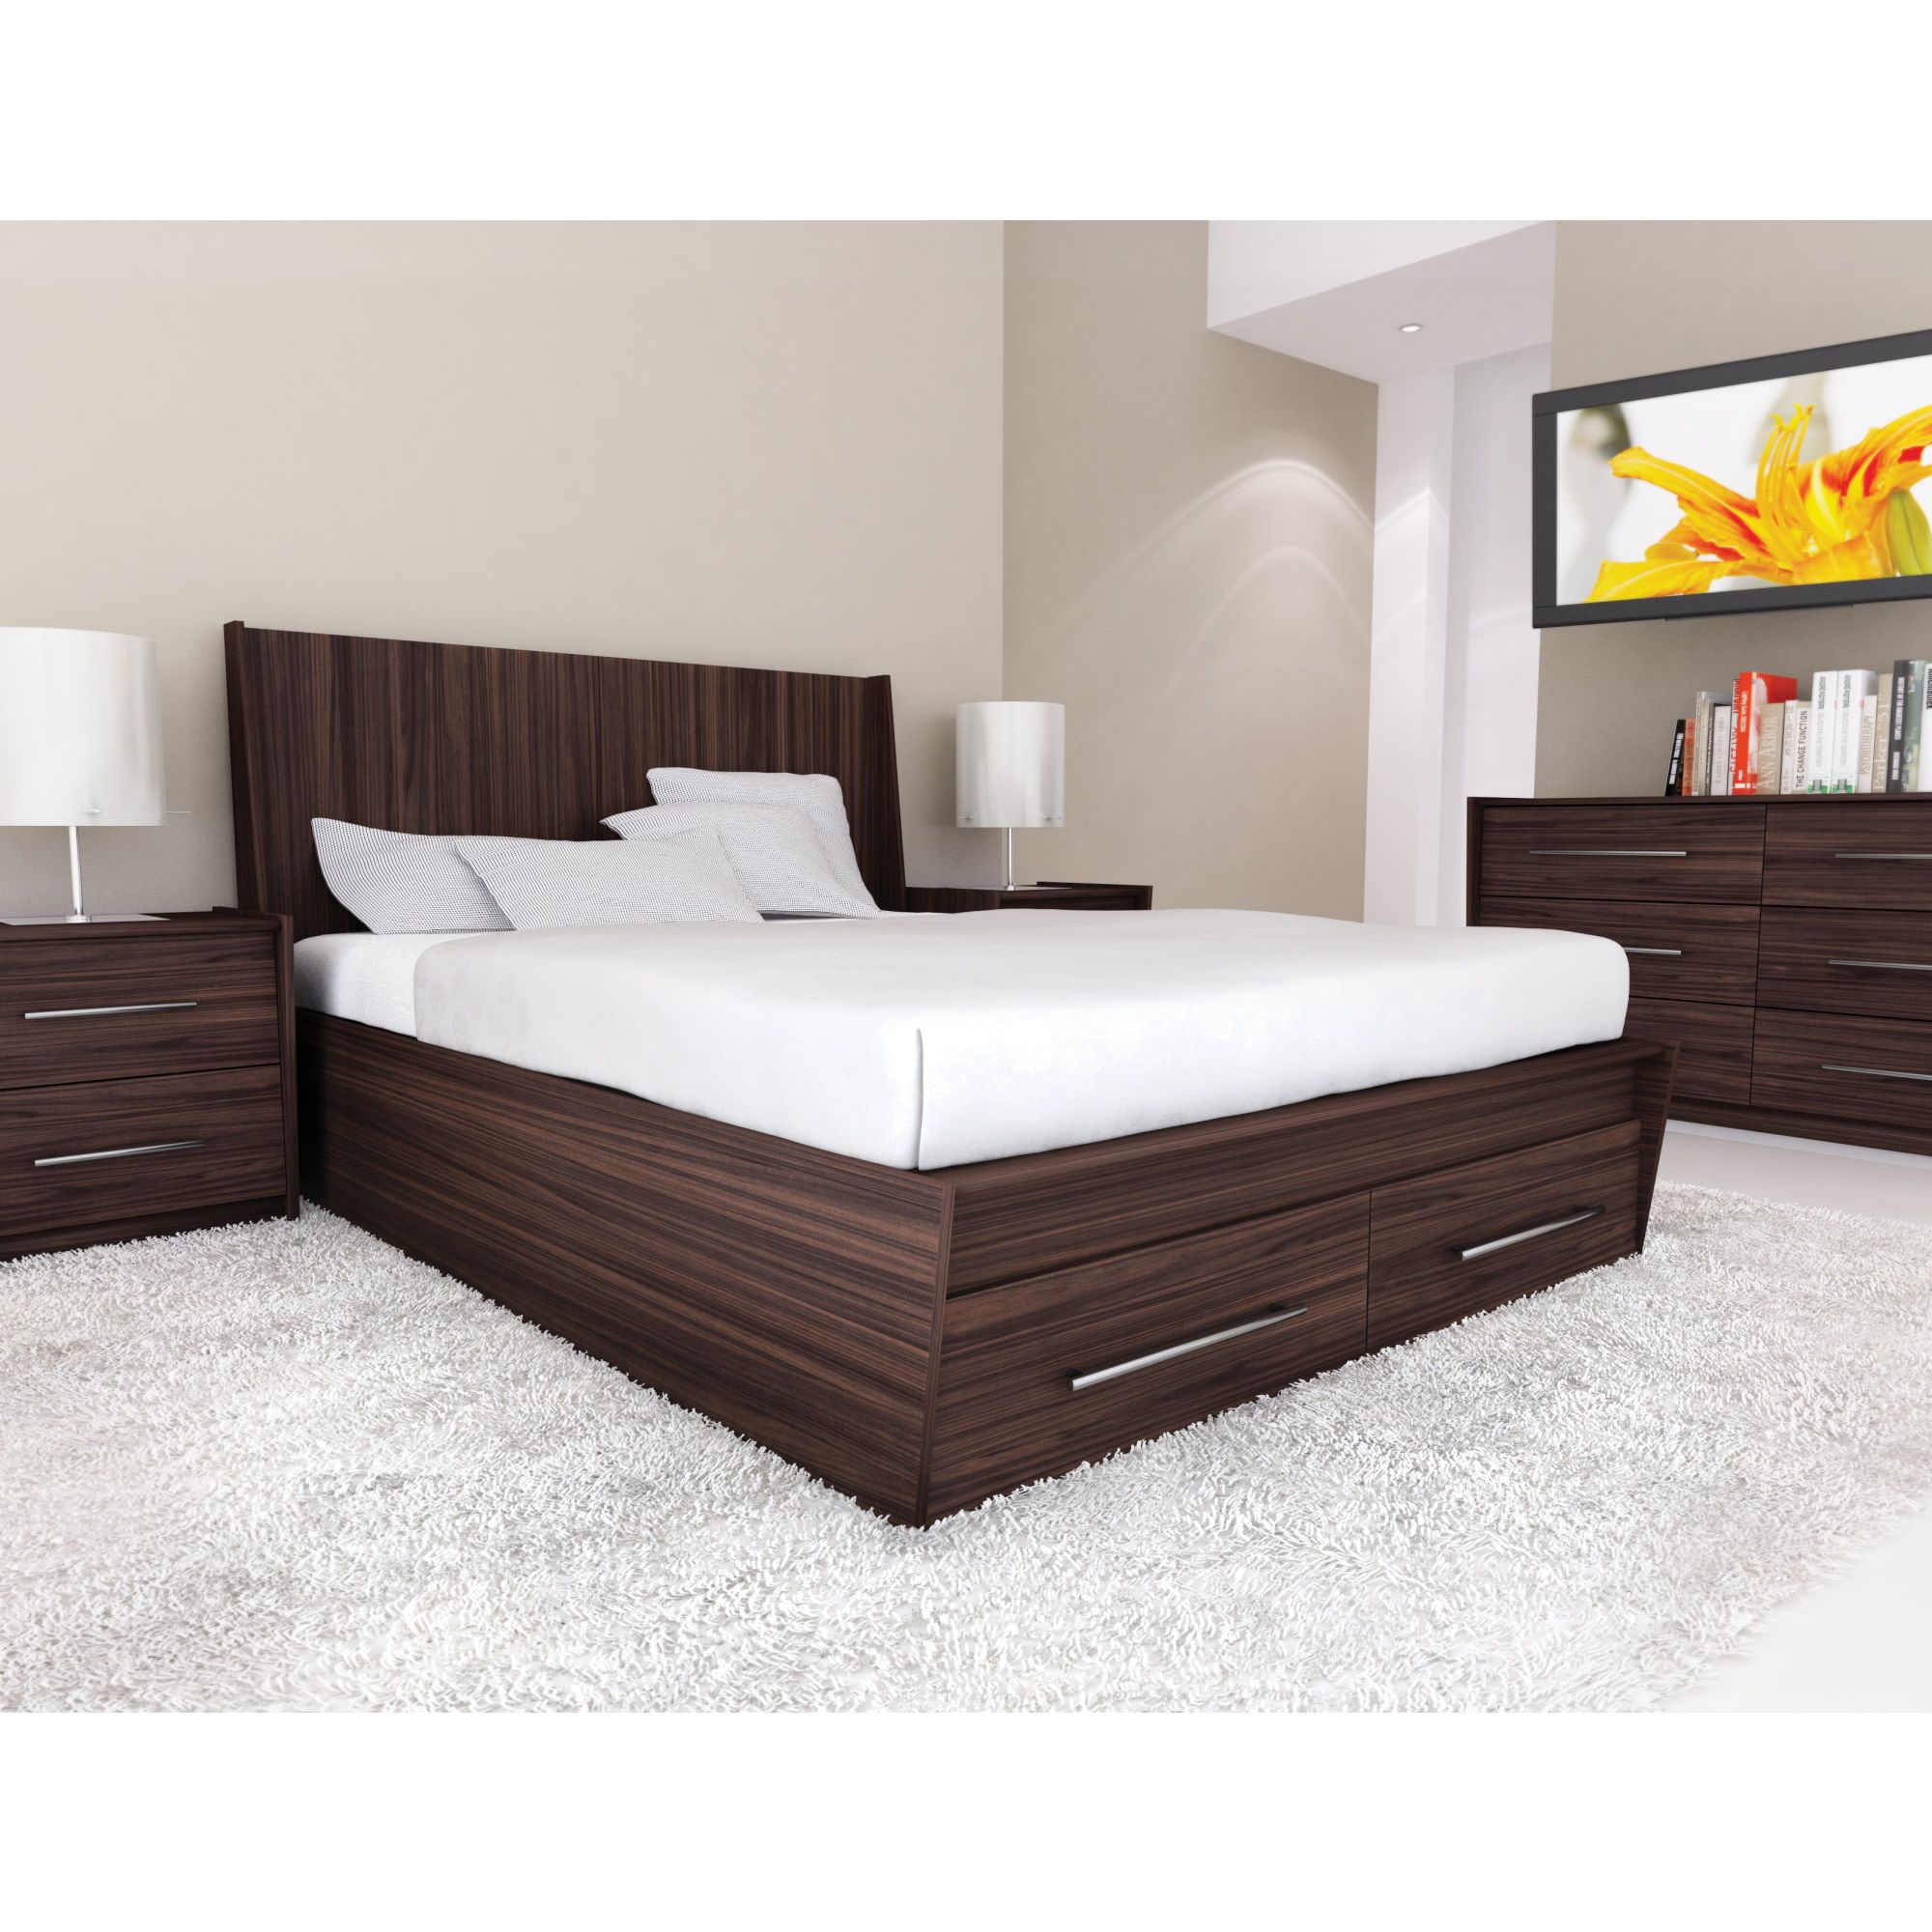 Bed designs for your comfortable bedroom interior design ideas wooden double bed designs for - Bedroom furniture design ...